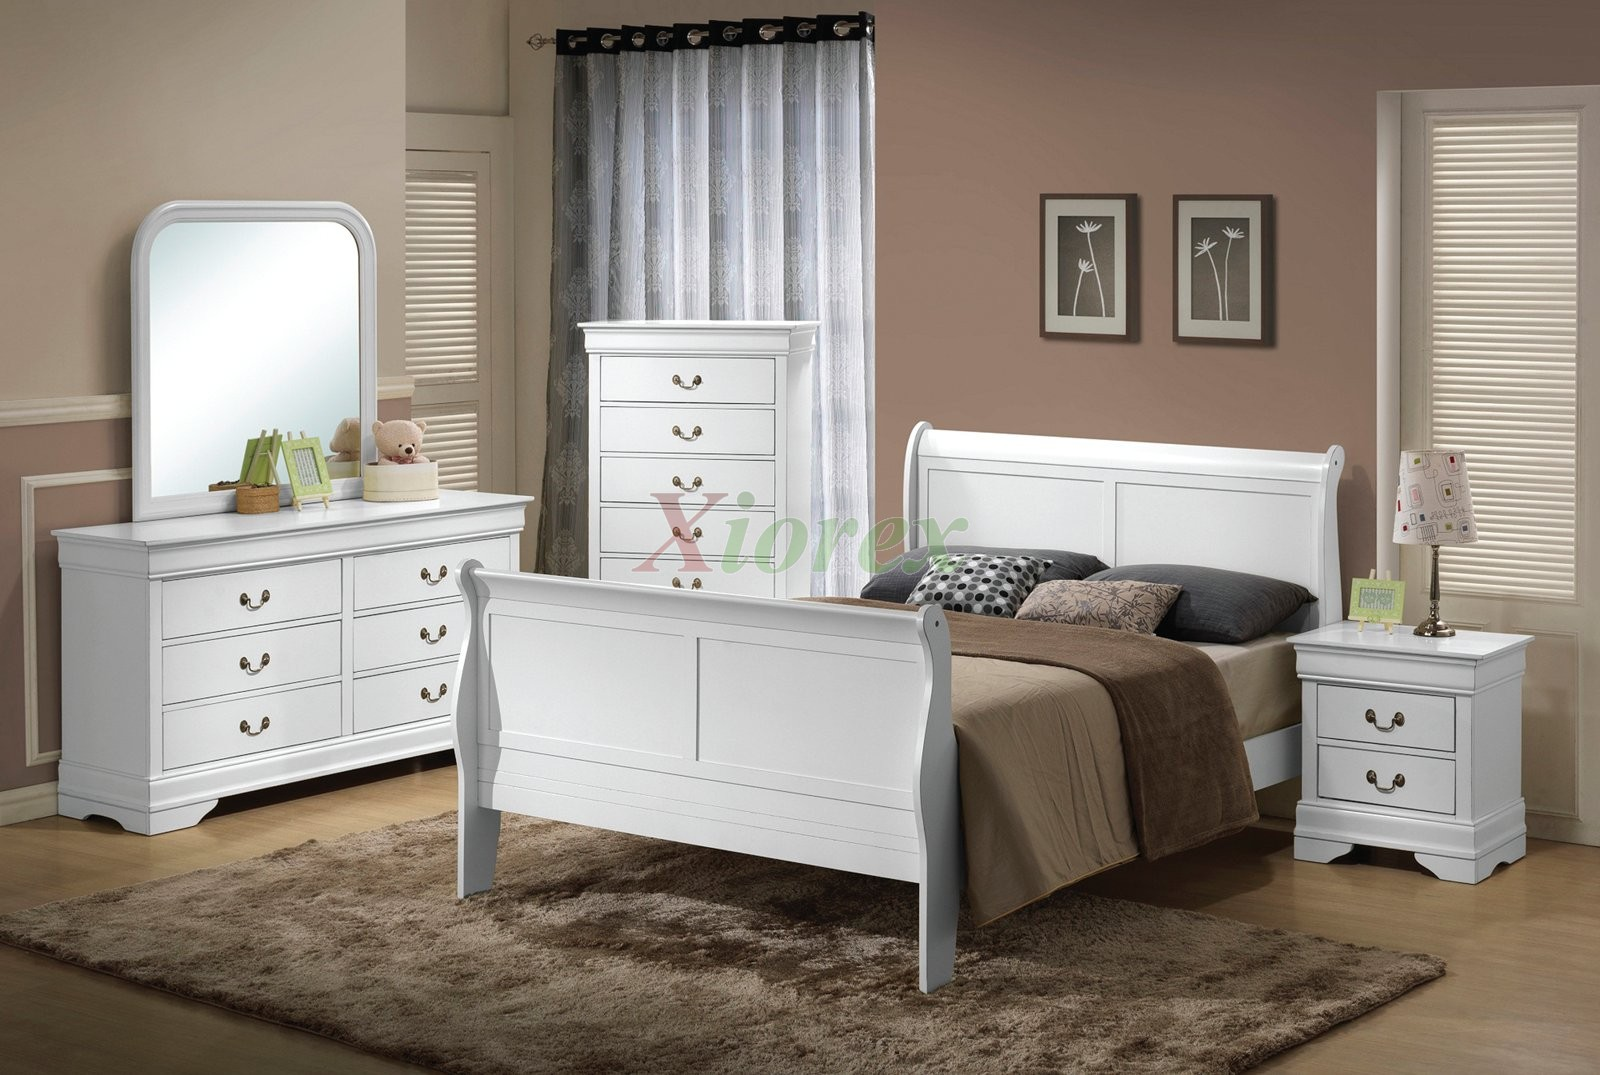 Semi-gloss Sleigh Like Bedroom Furniture Set 9 in Cherry Black White